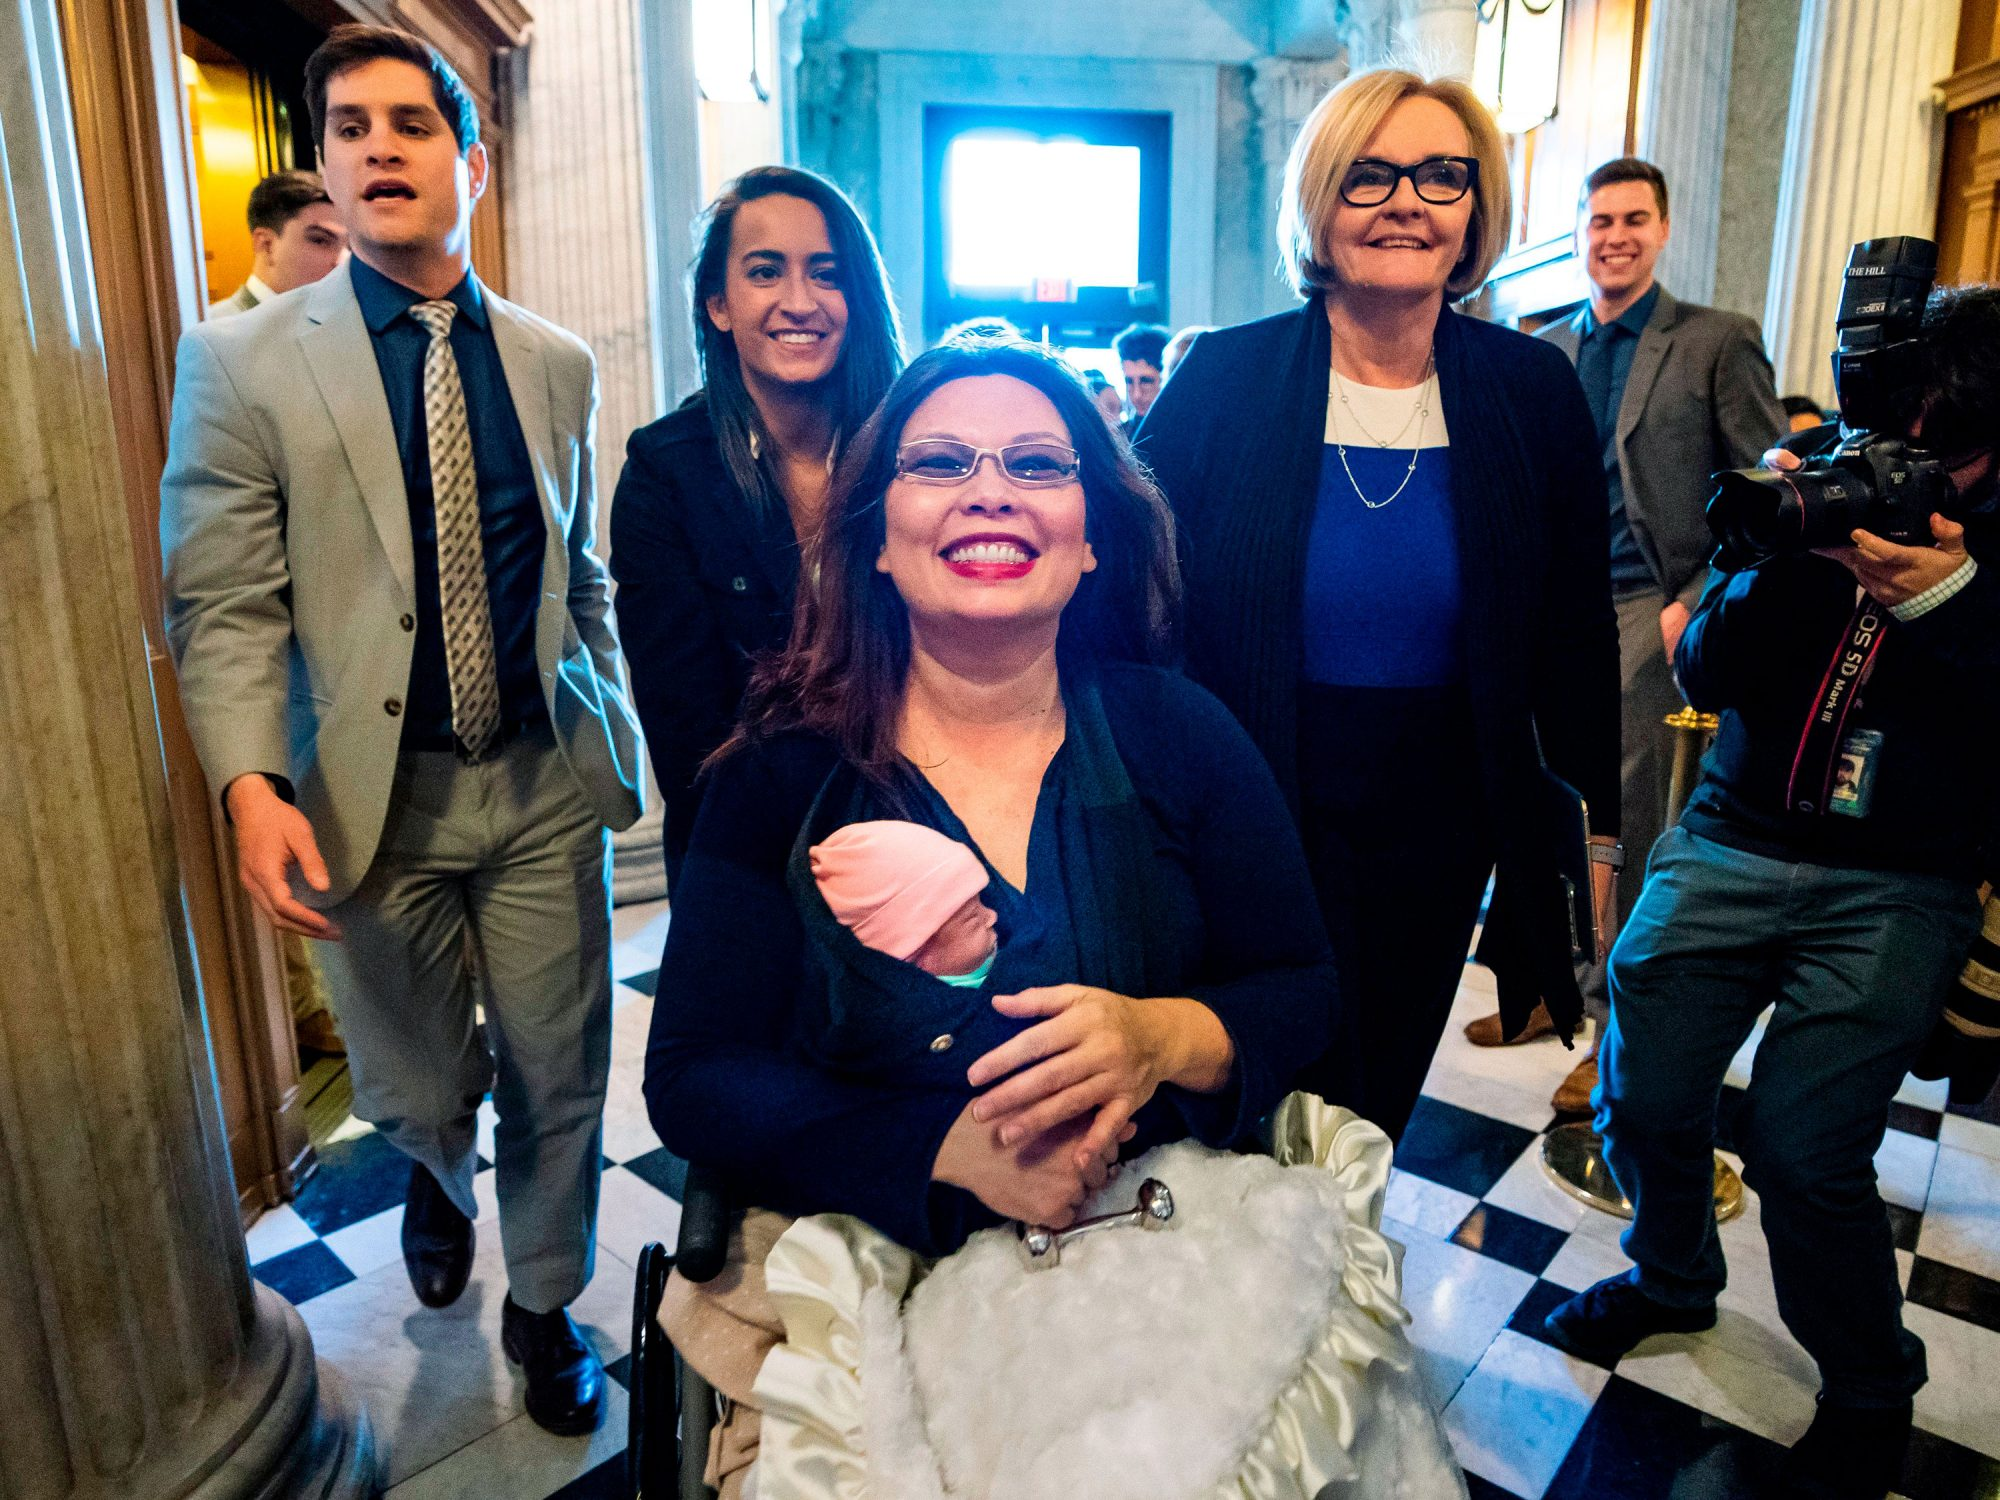 BADASS WOMEN OF THE YEAR: TAMMY DUCKWORTH